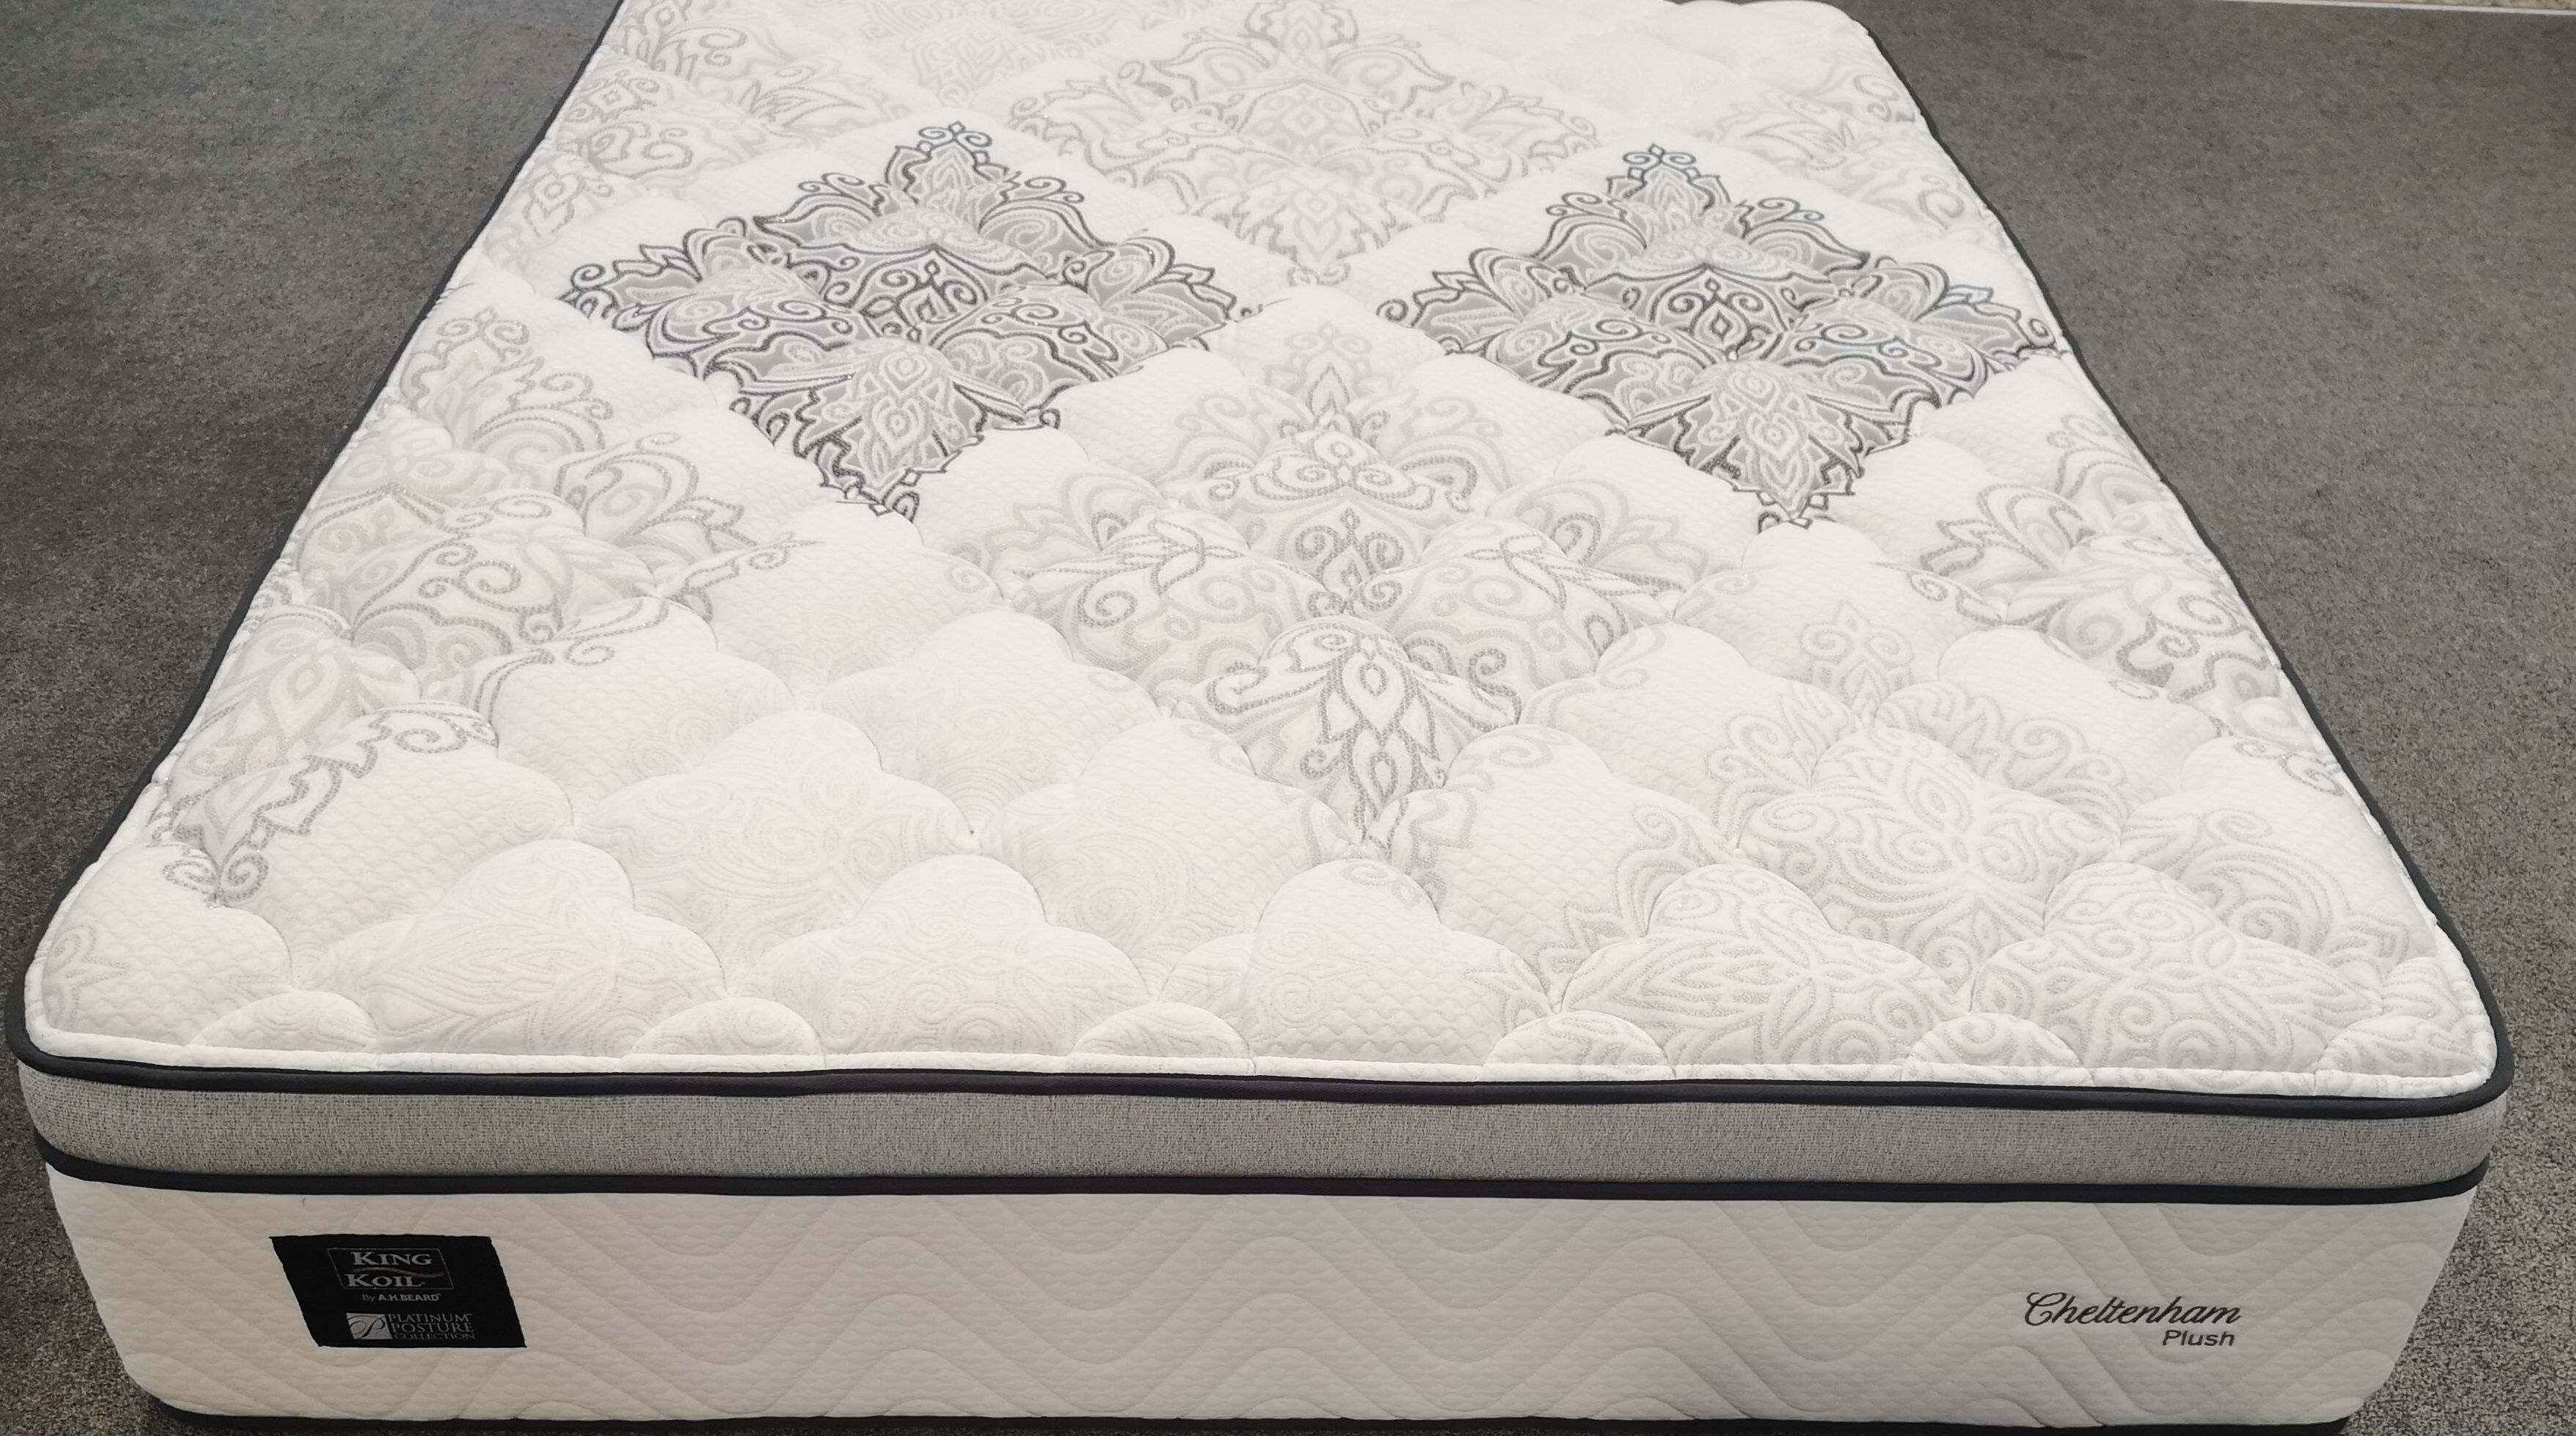 CHELTENHAM PLUSH QUEEN MATTRESS